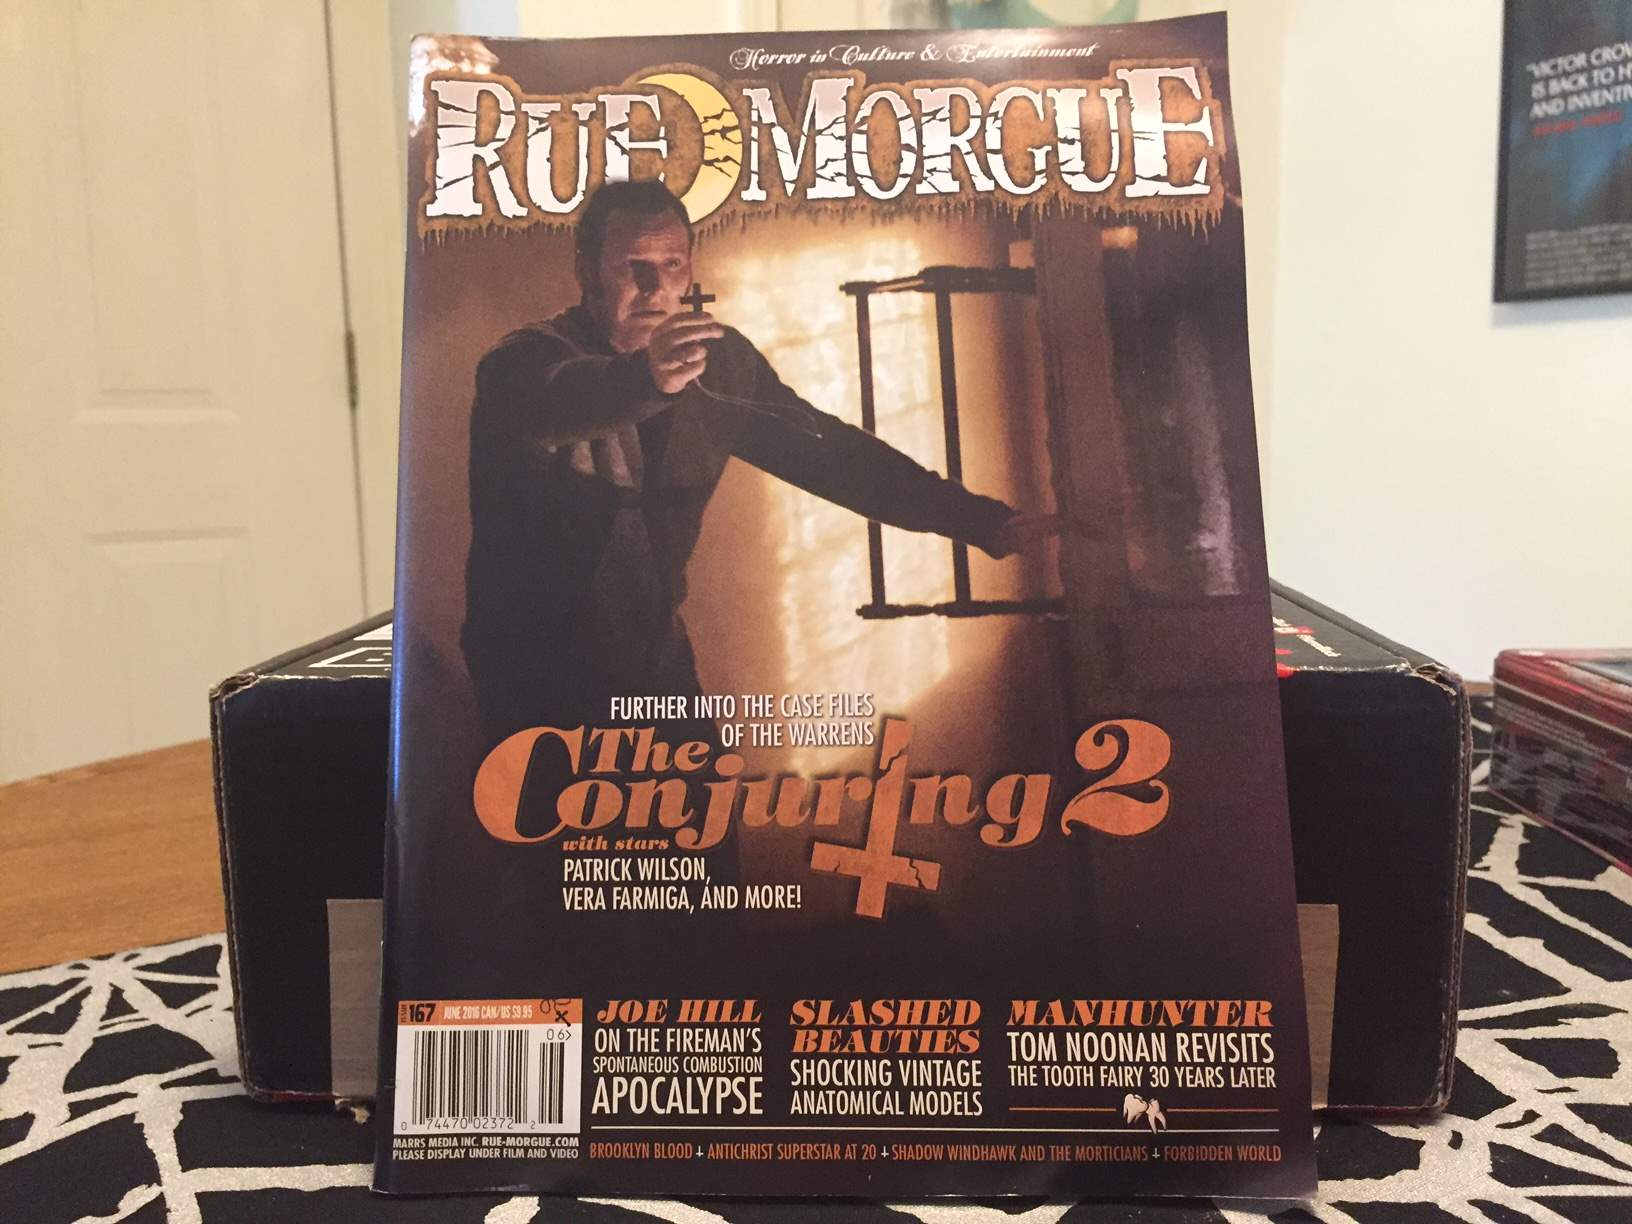 The June 2016 issue of Rue Morgue Magazine from the May 2016 Horror Block